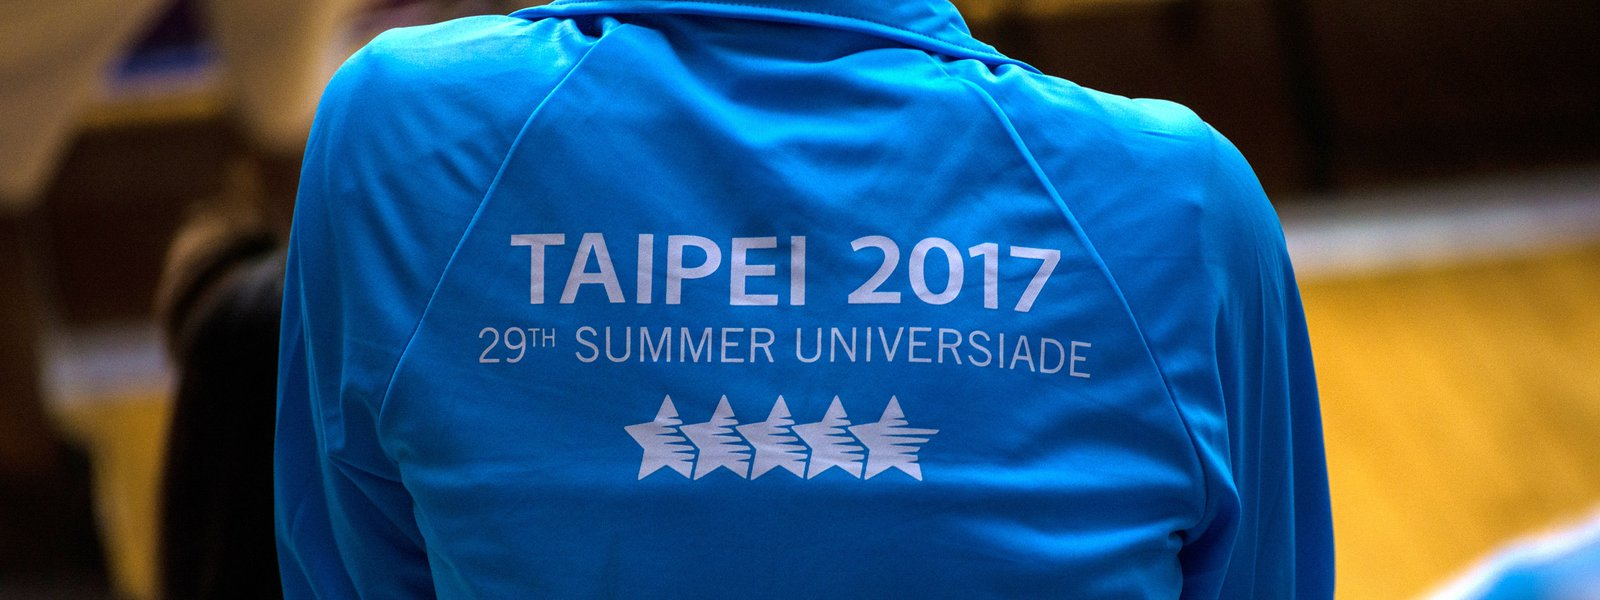 Taipei 2017 Summer Universiade (Photo: Neef via Flickr / CC0)